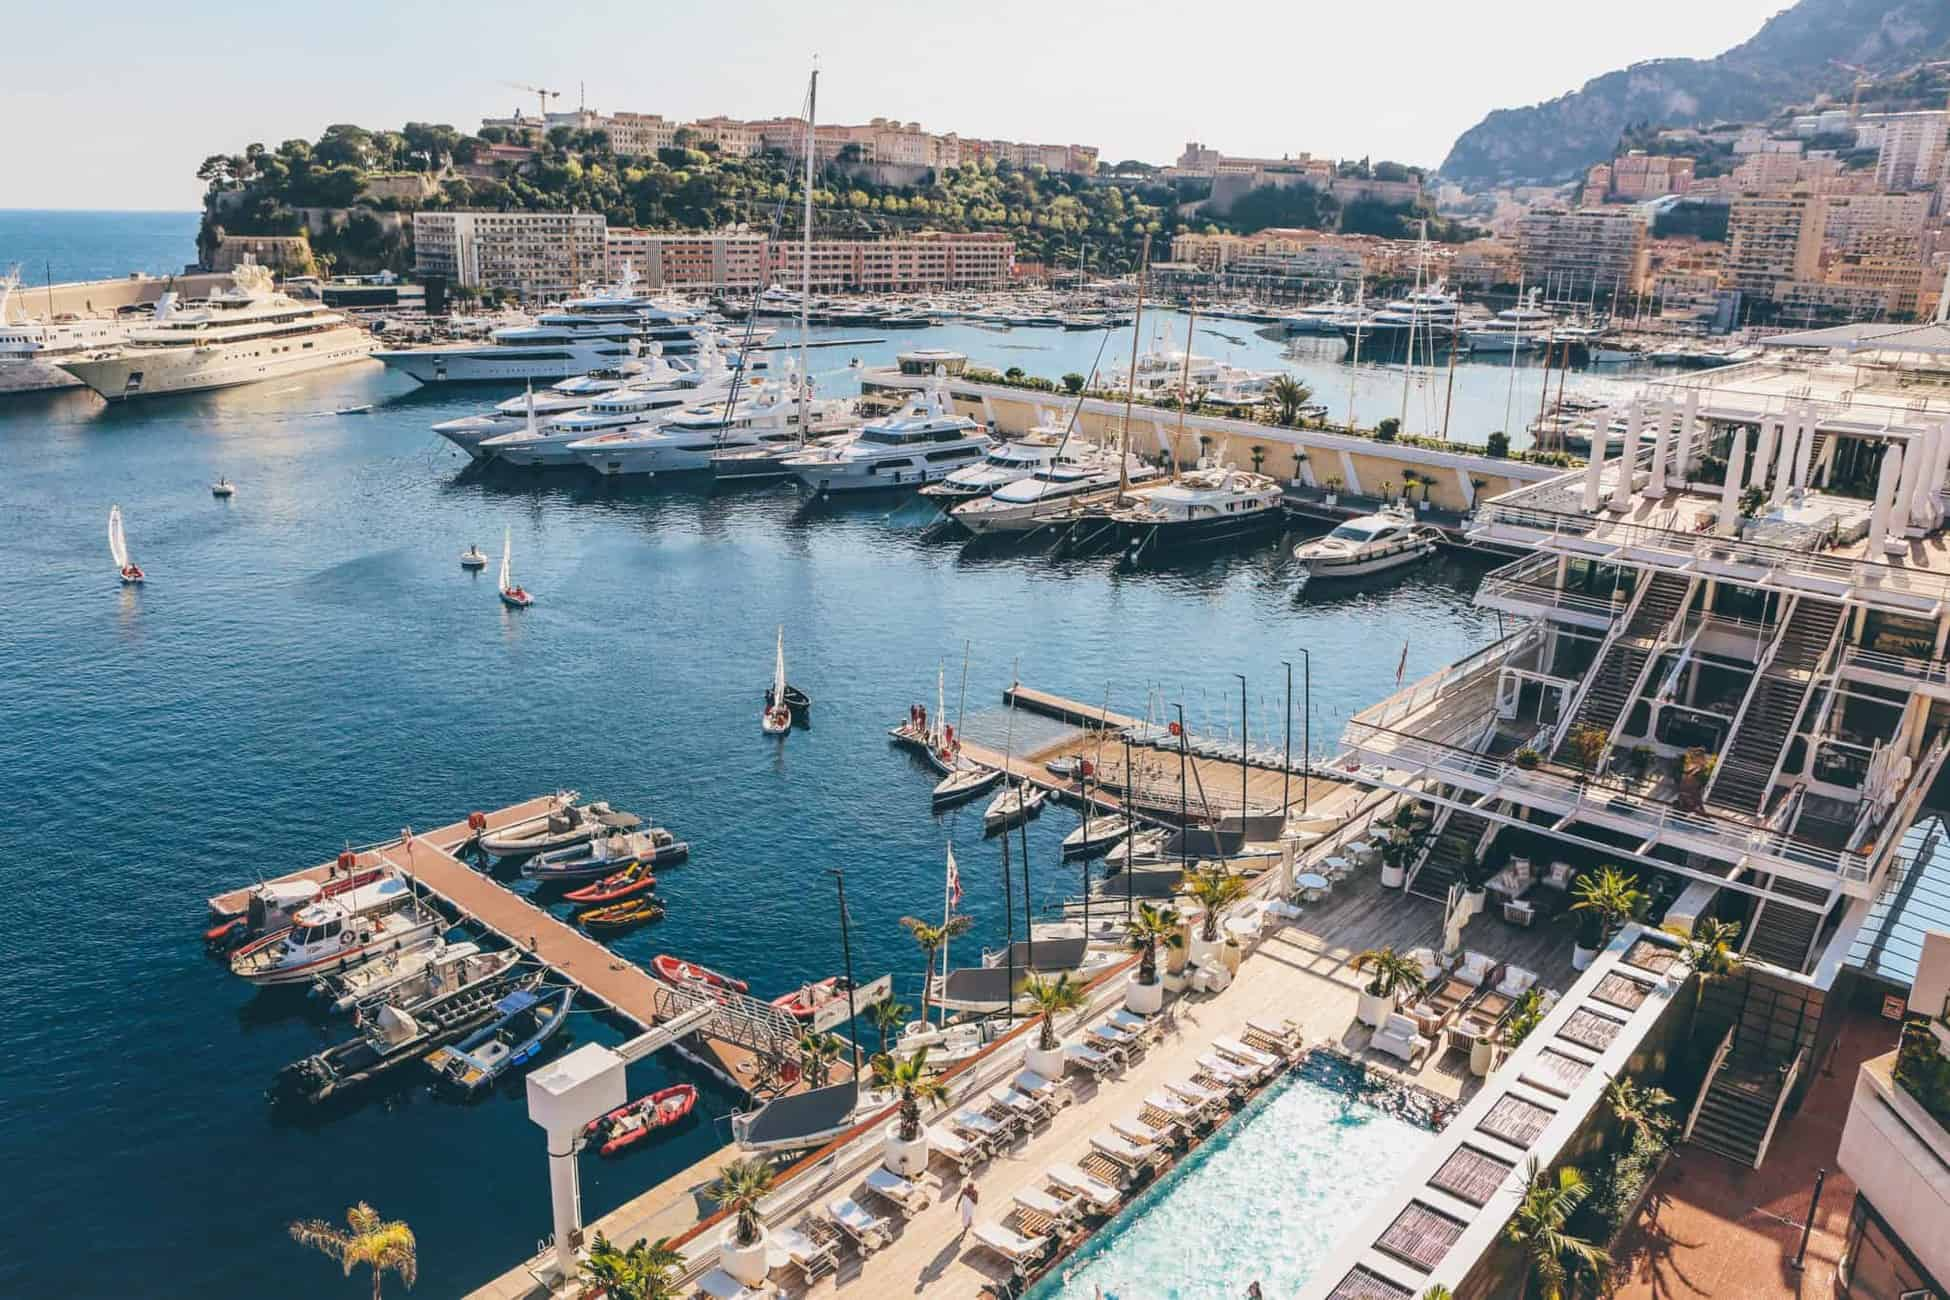 Monaco Marina is a yachting hub for getting a yacht job